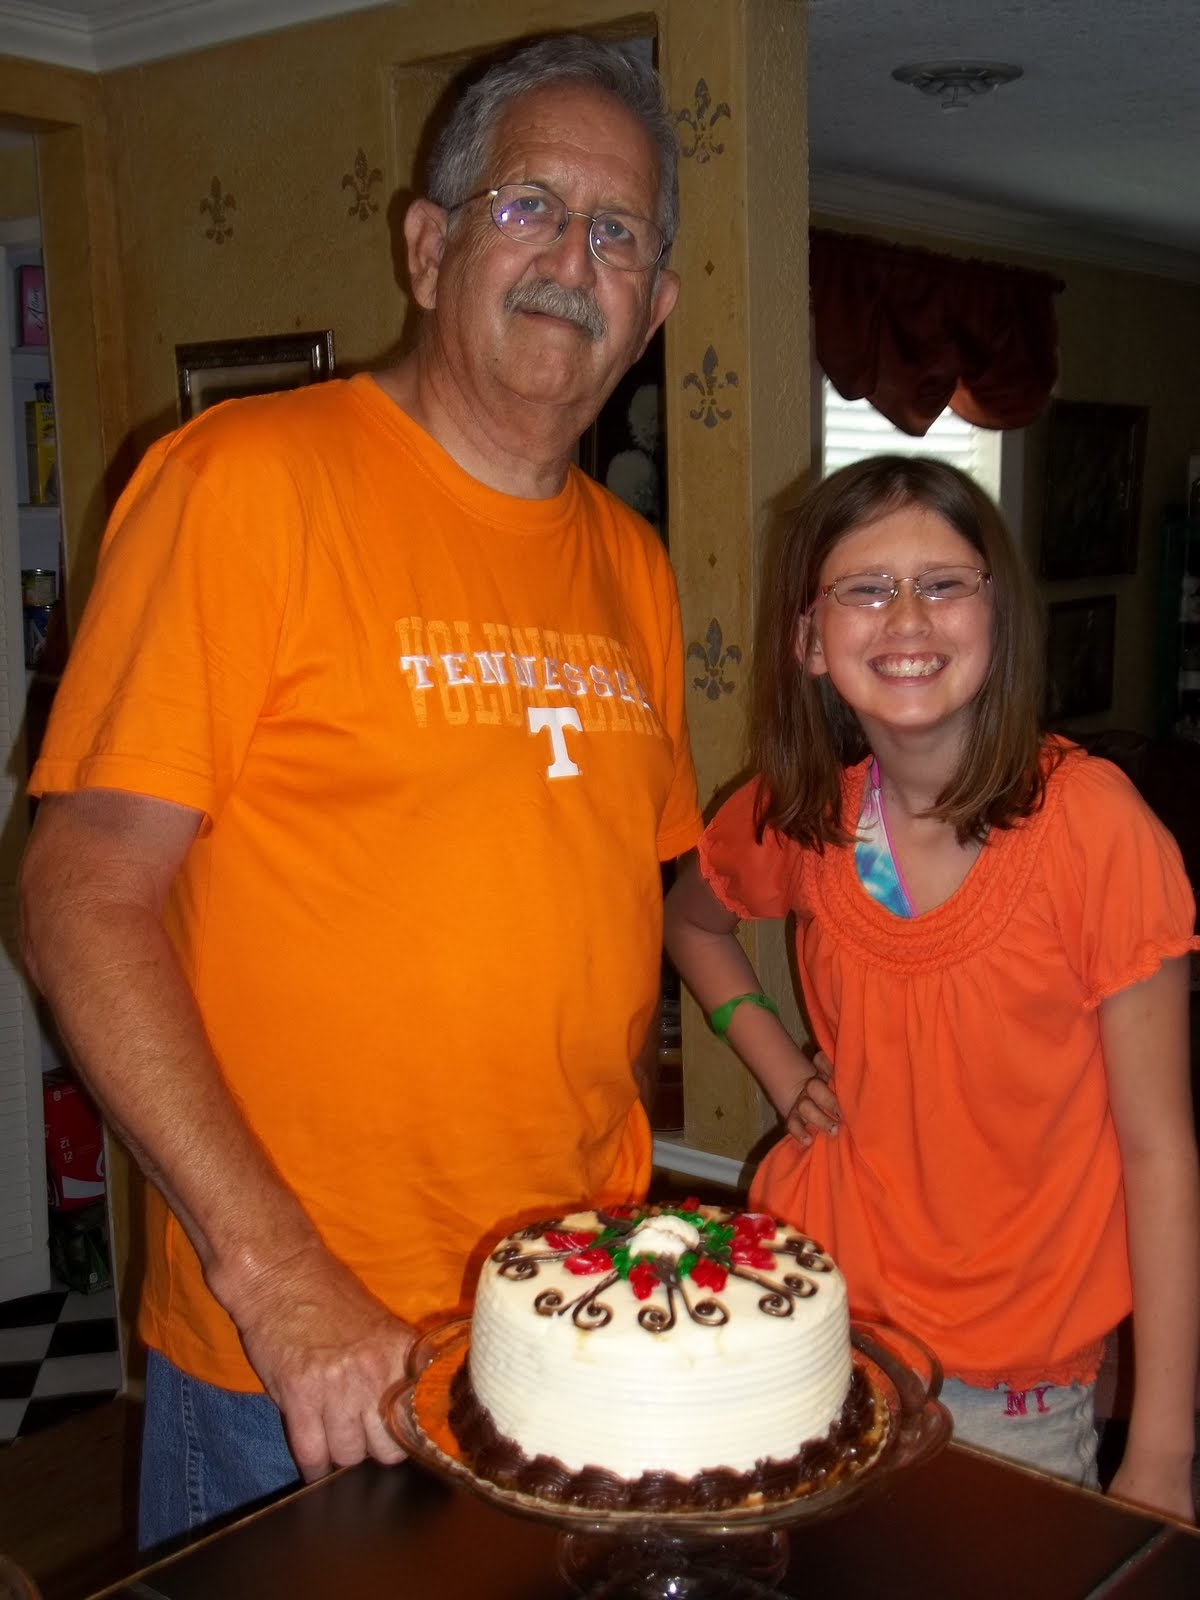 My Papaw Had His Birthday On Sunday Me And Mamaw Surprised Him With A Red Velvet Cake Old Fashioned Vanilla MAYFIELD Ice Cream Thats HIS Favorite